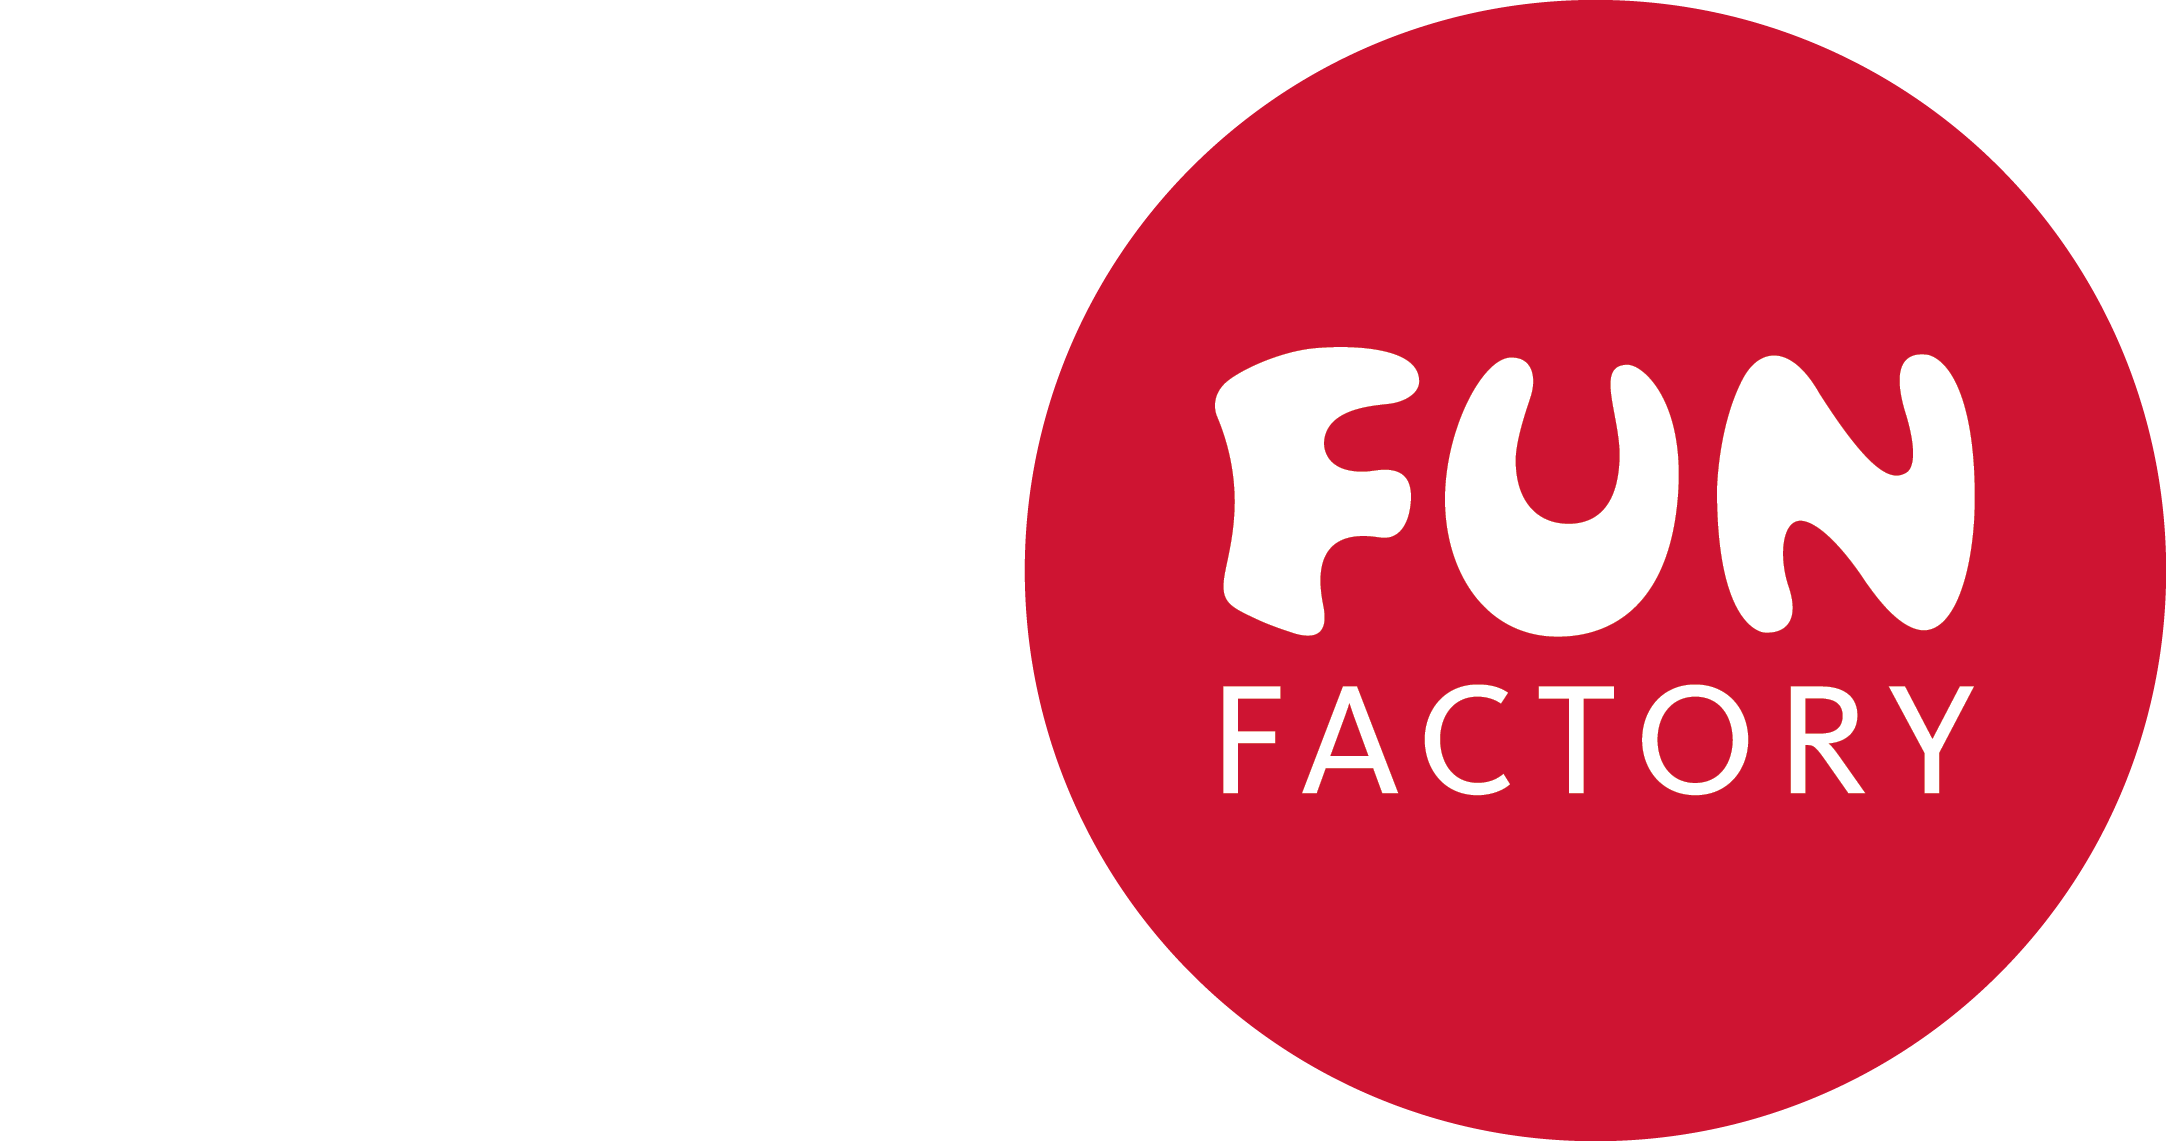 FUN Factory Party France